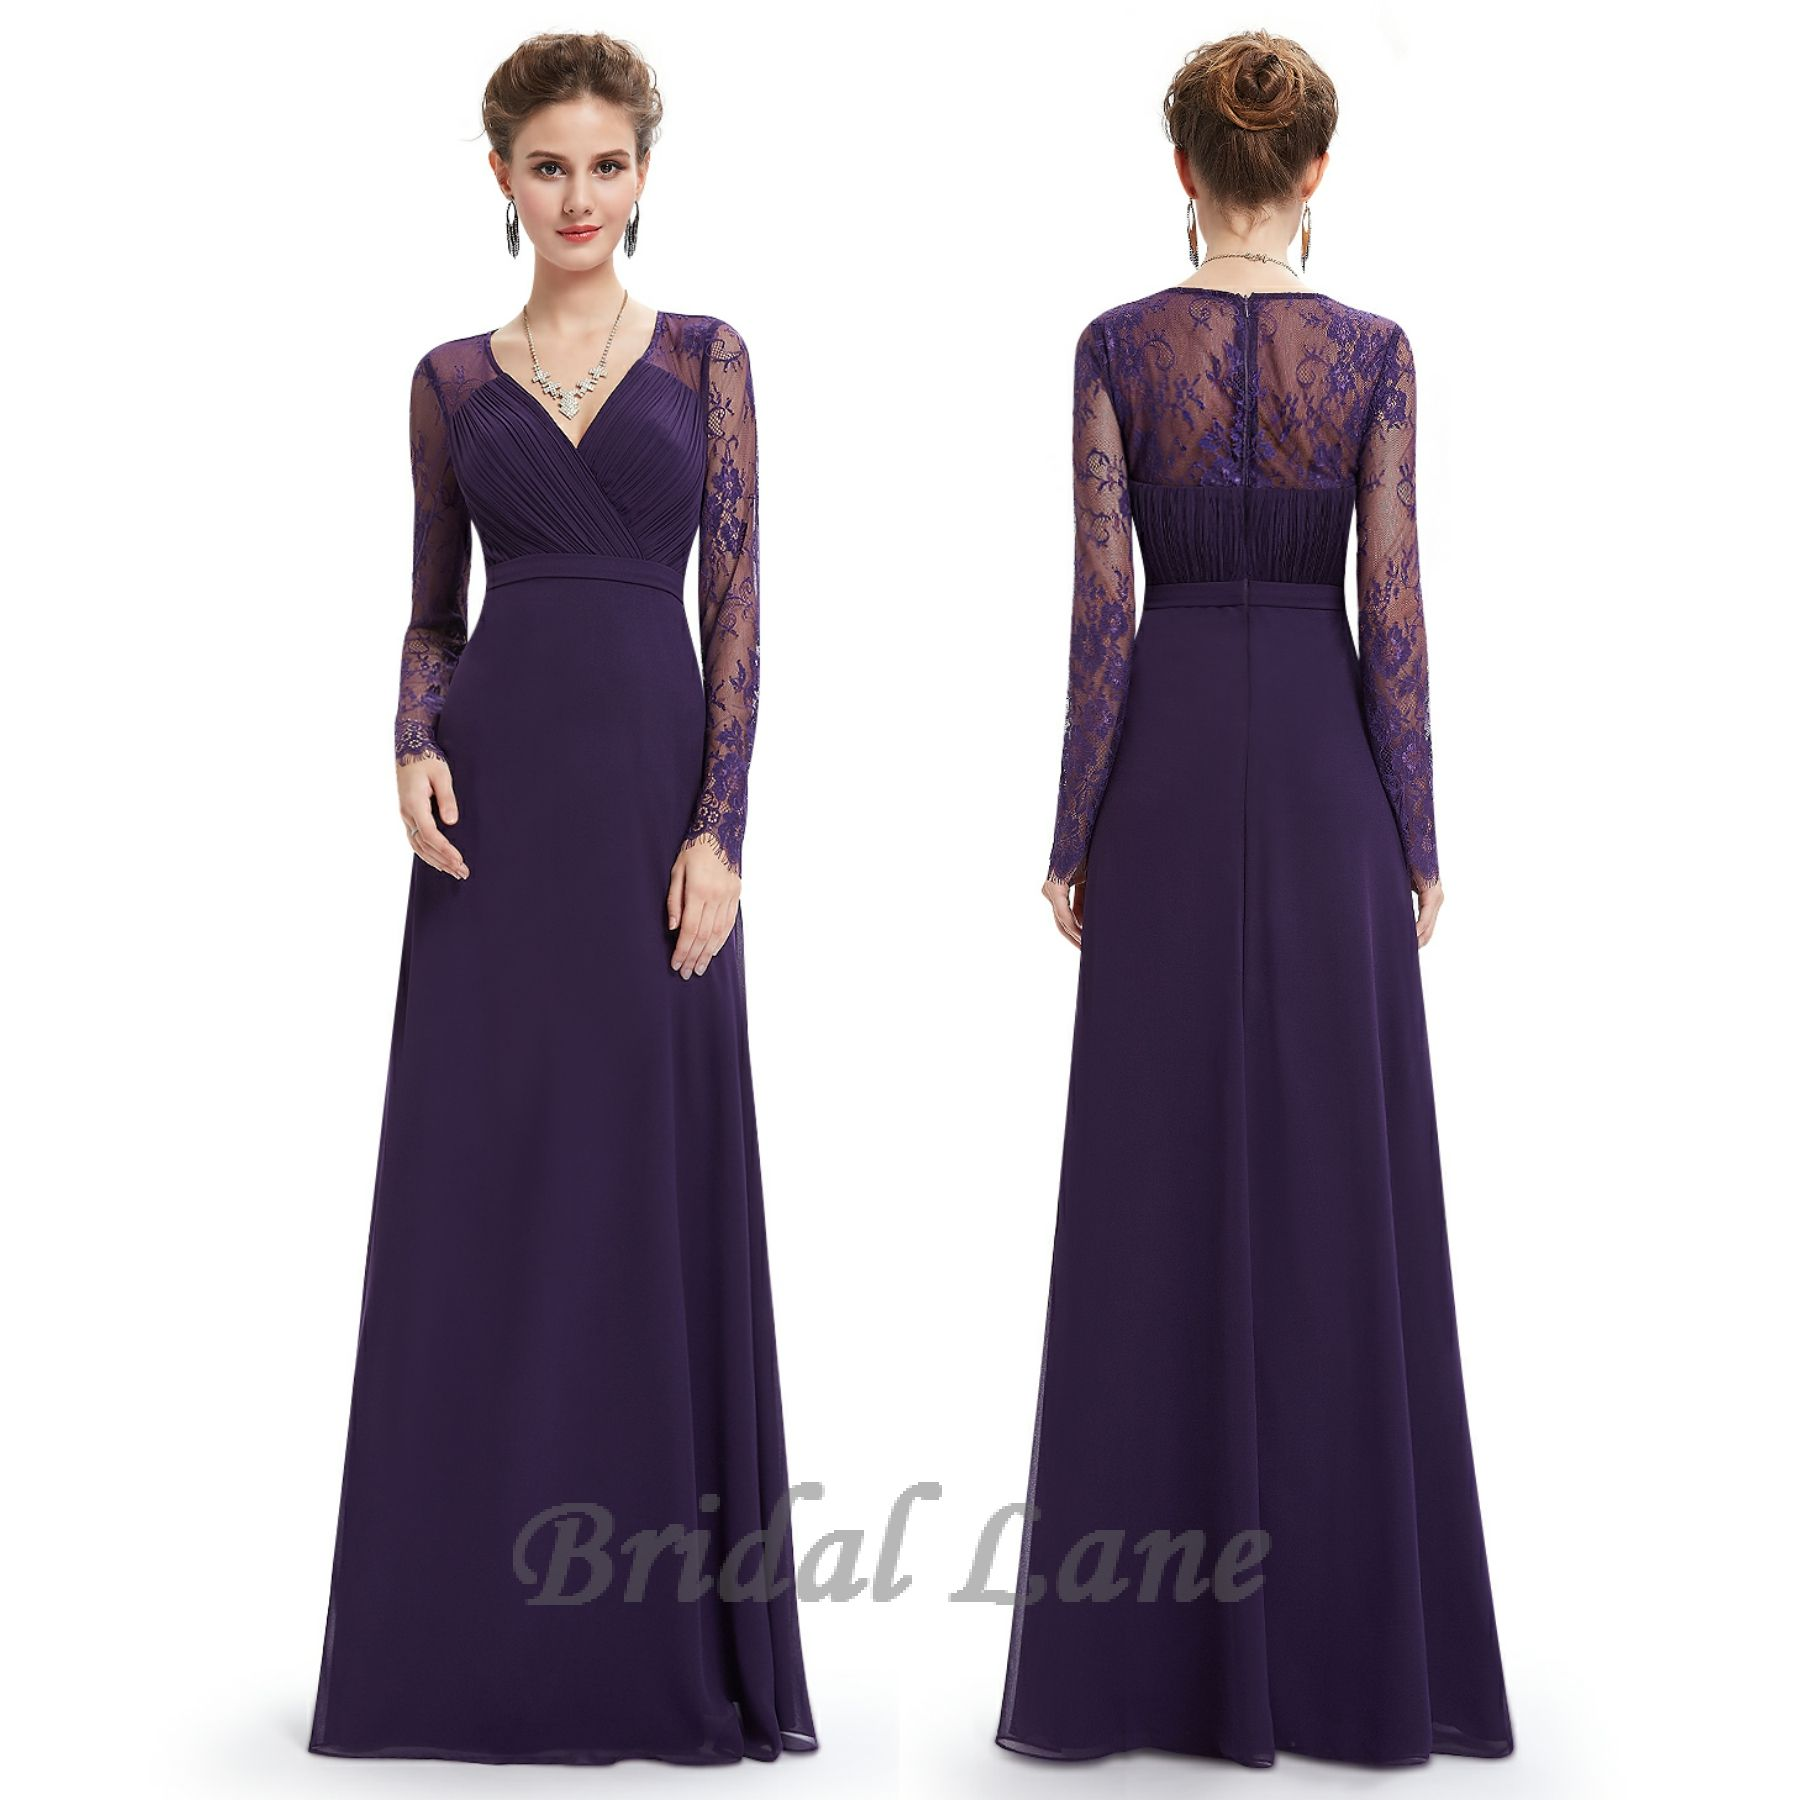 Matric dance dresses matric farewell dresses evening dresses pictures - Long Sleeve Evening Dresses For Matric Ball Matric Farewell In Cape Town Bridal Lane